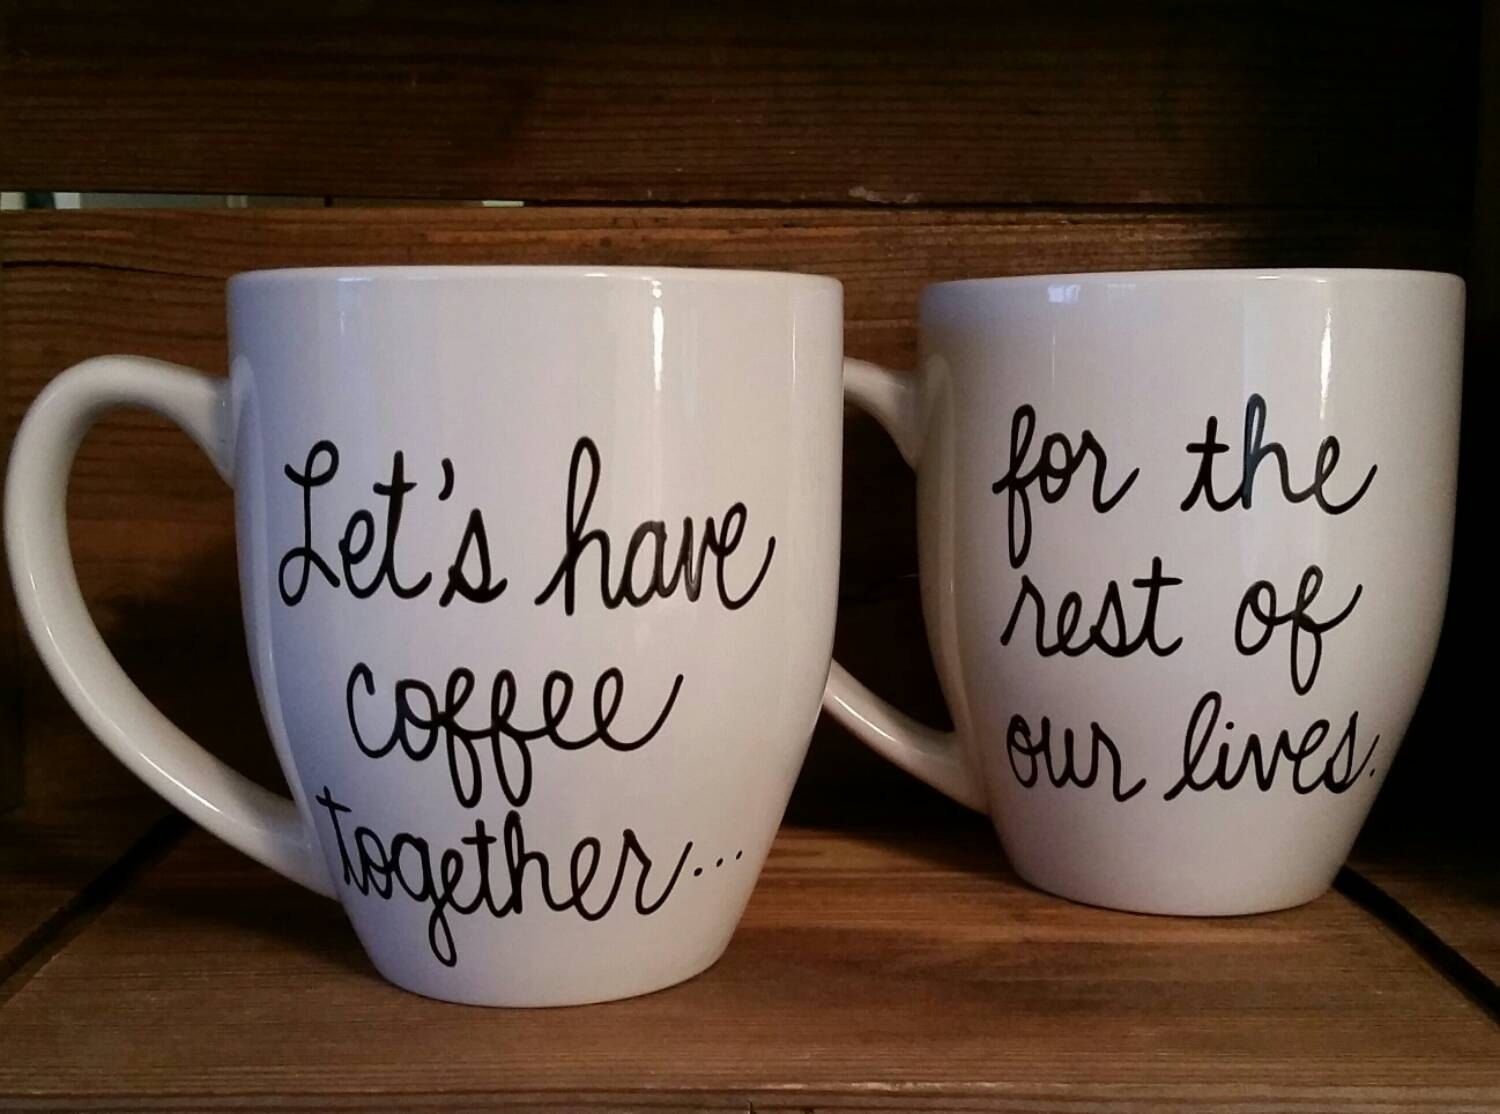 Gag Wedding Gifts For Couples: Let's Have Coffee Together Mugs, Proposal Mug,Couple's